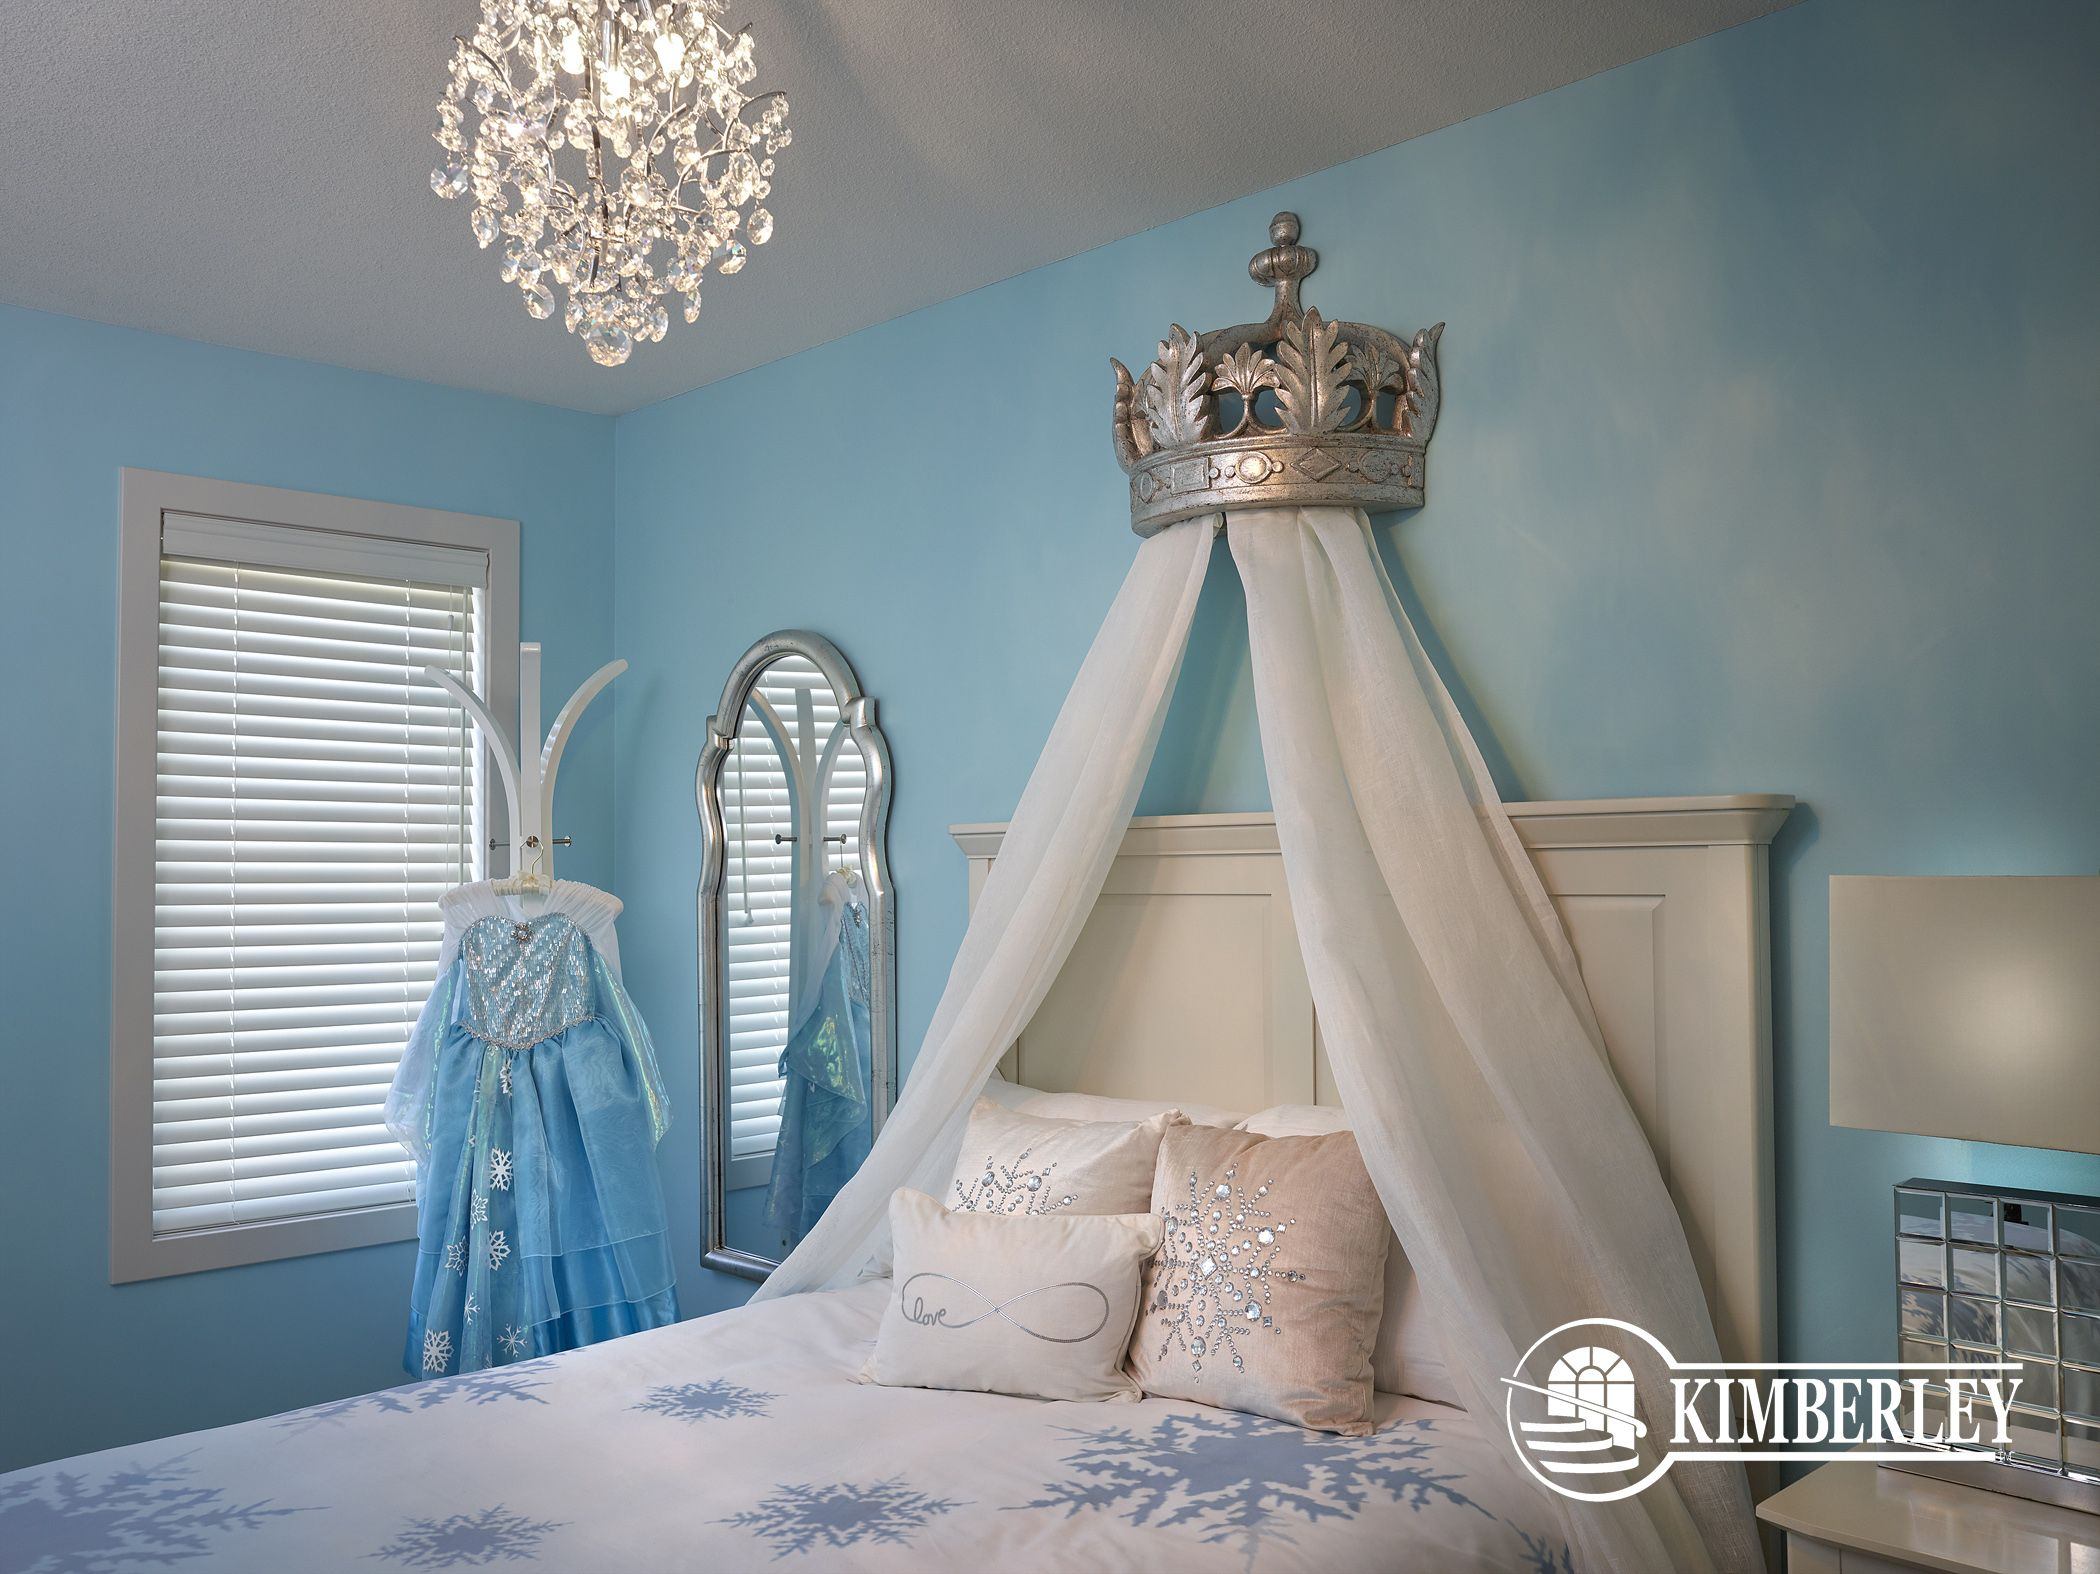 25+ unique frozen bedroom ideas on pinterest | frozen room decor